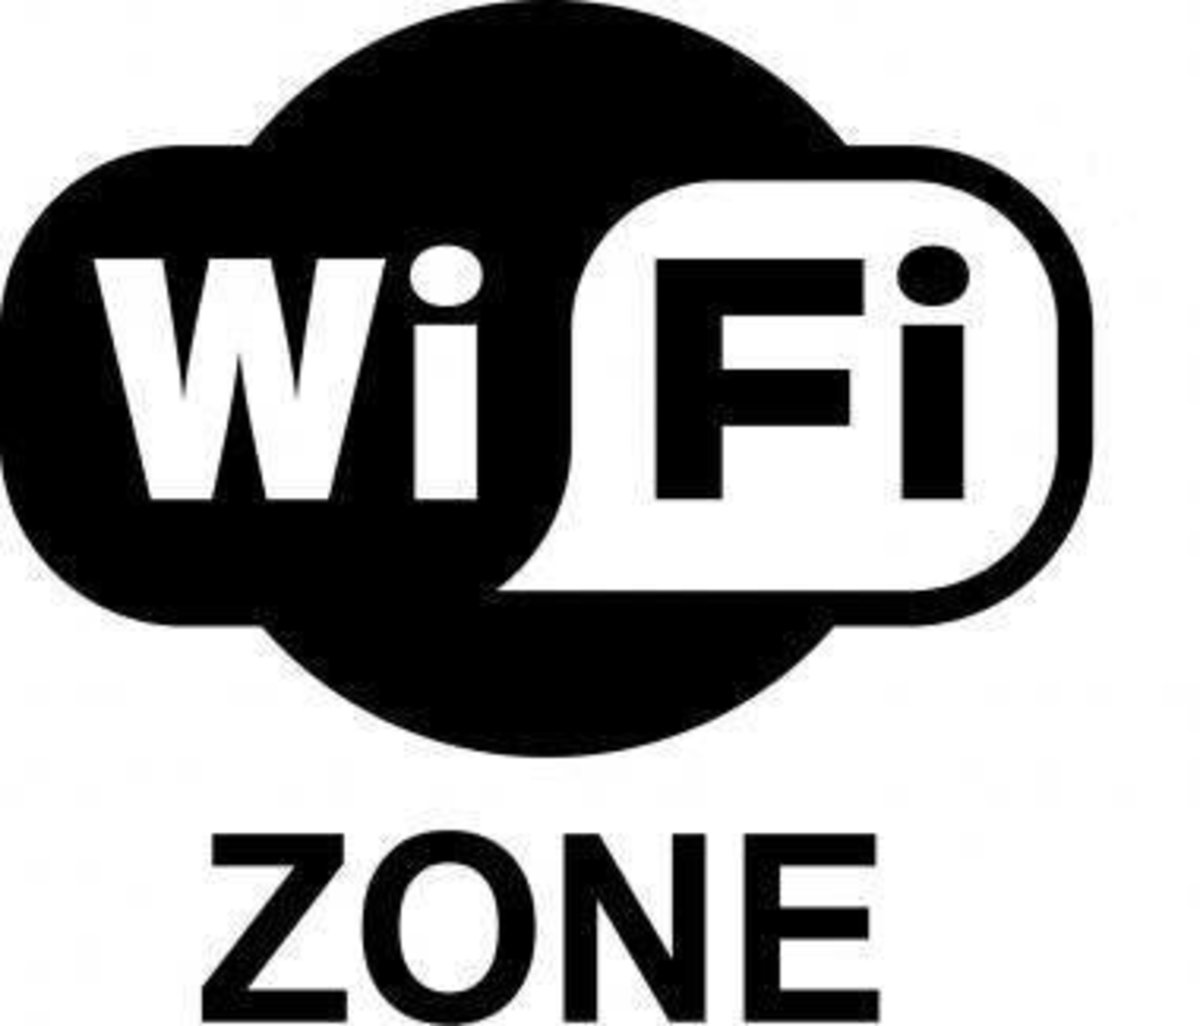 How to Build a Large Citywide WiFi Hotspot/Zone